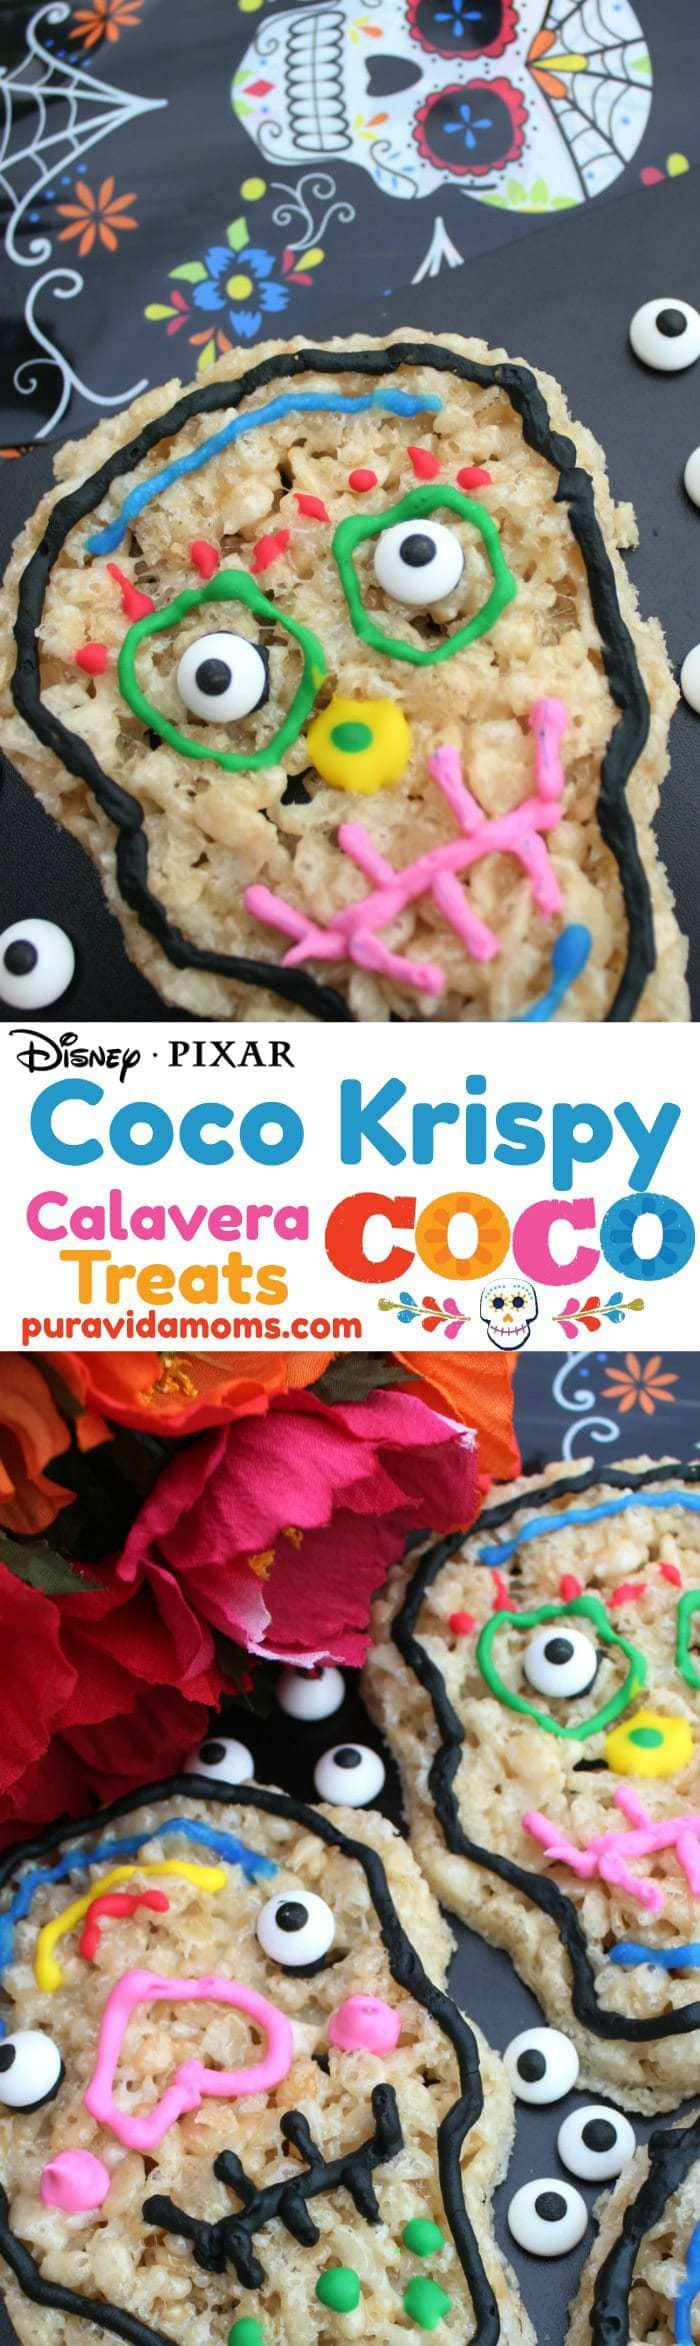 Coco Crispy Skull Treats Recipe